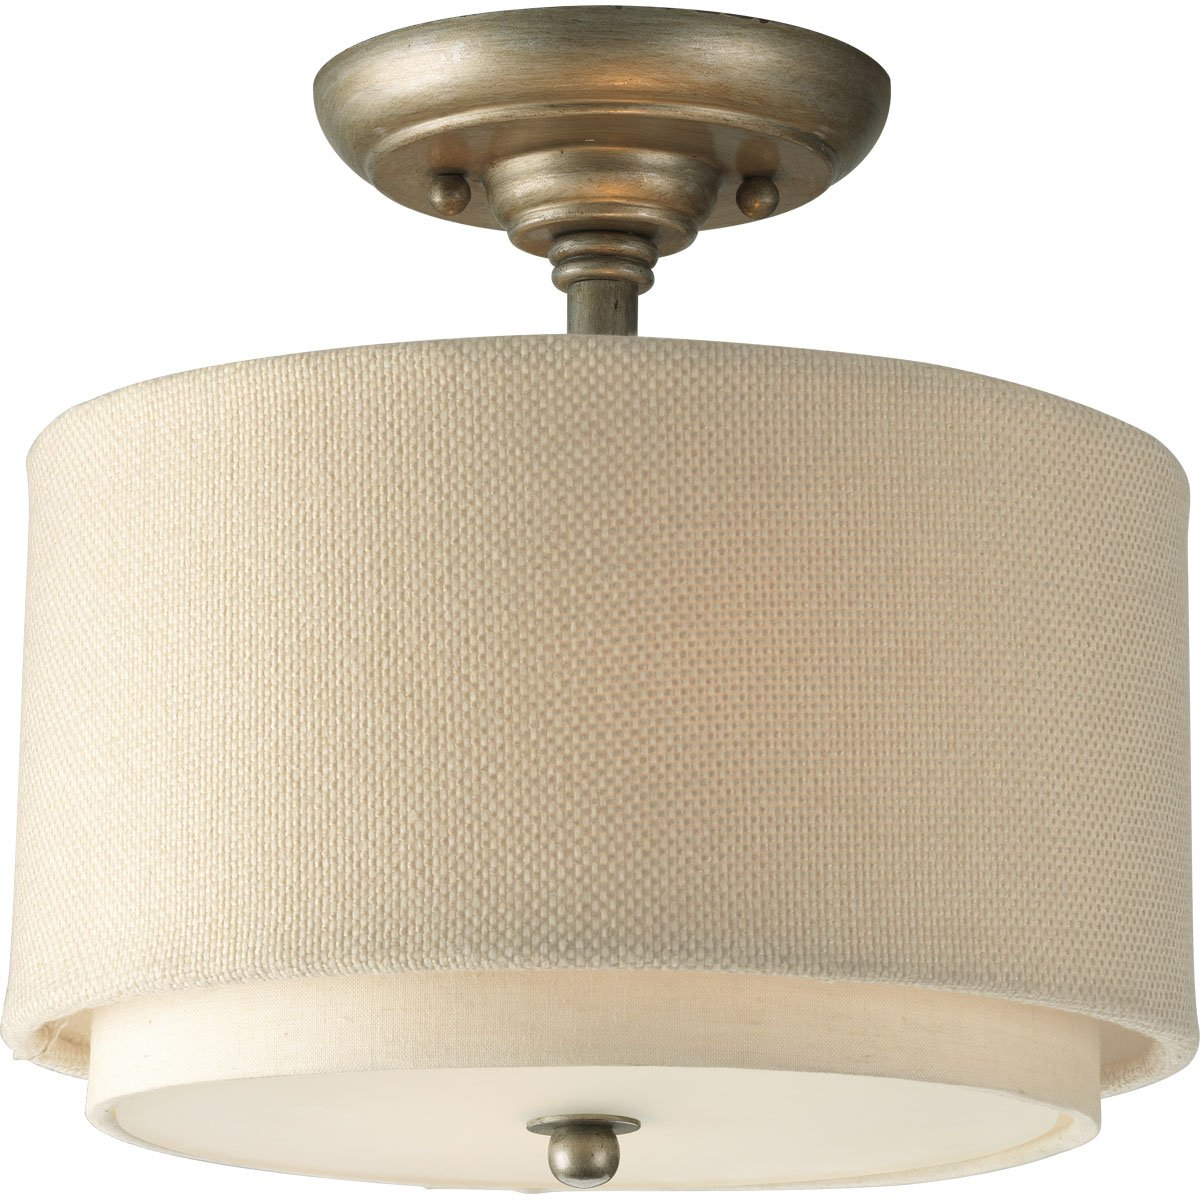 Progress lighting p3886 134 2 light semi flush with double drum progress lighting p3886 134 2 light semi flush with double drum shades and toasted linen fabric chain and ceiling mounts both included silver ridge close aloadofball Images